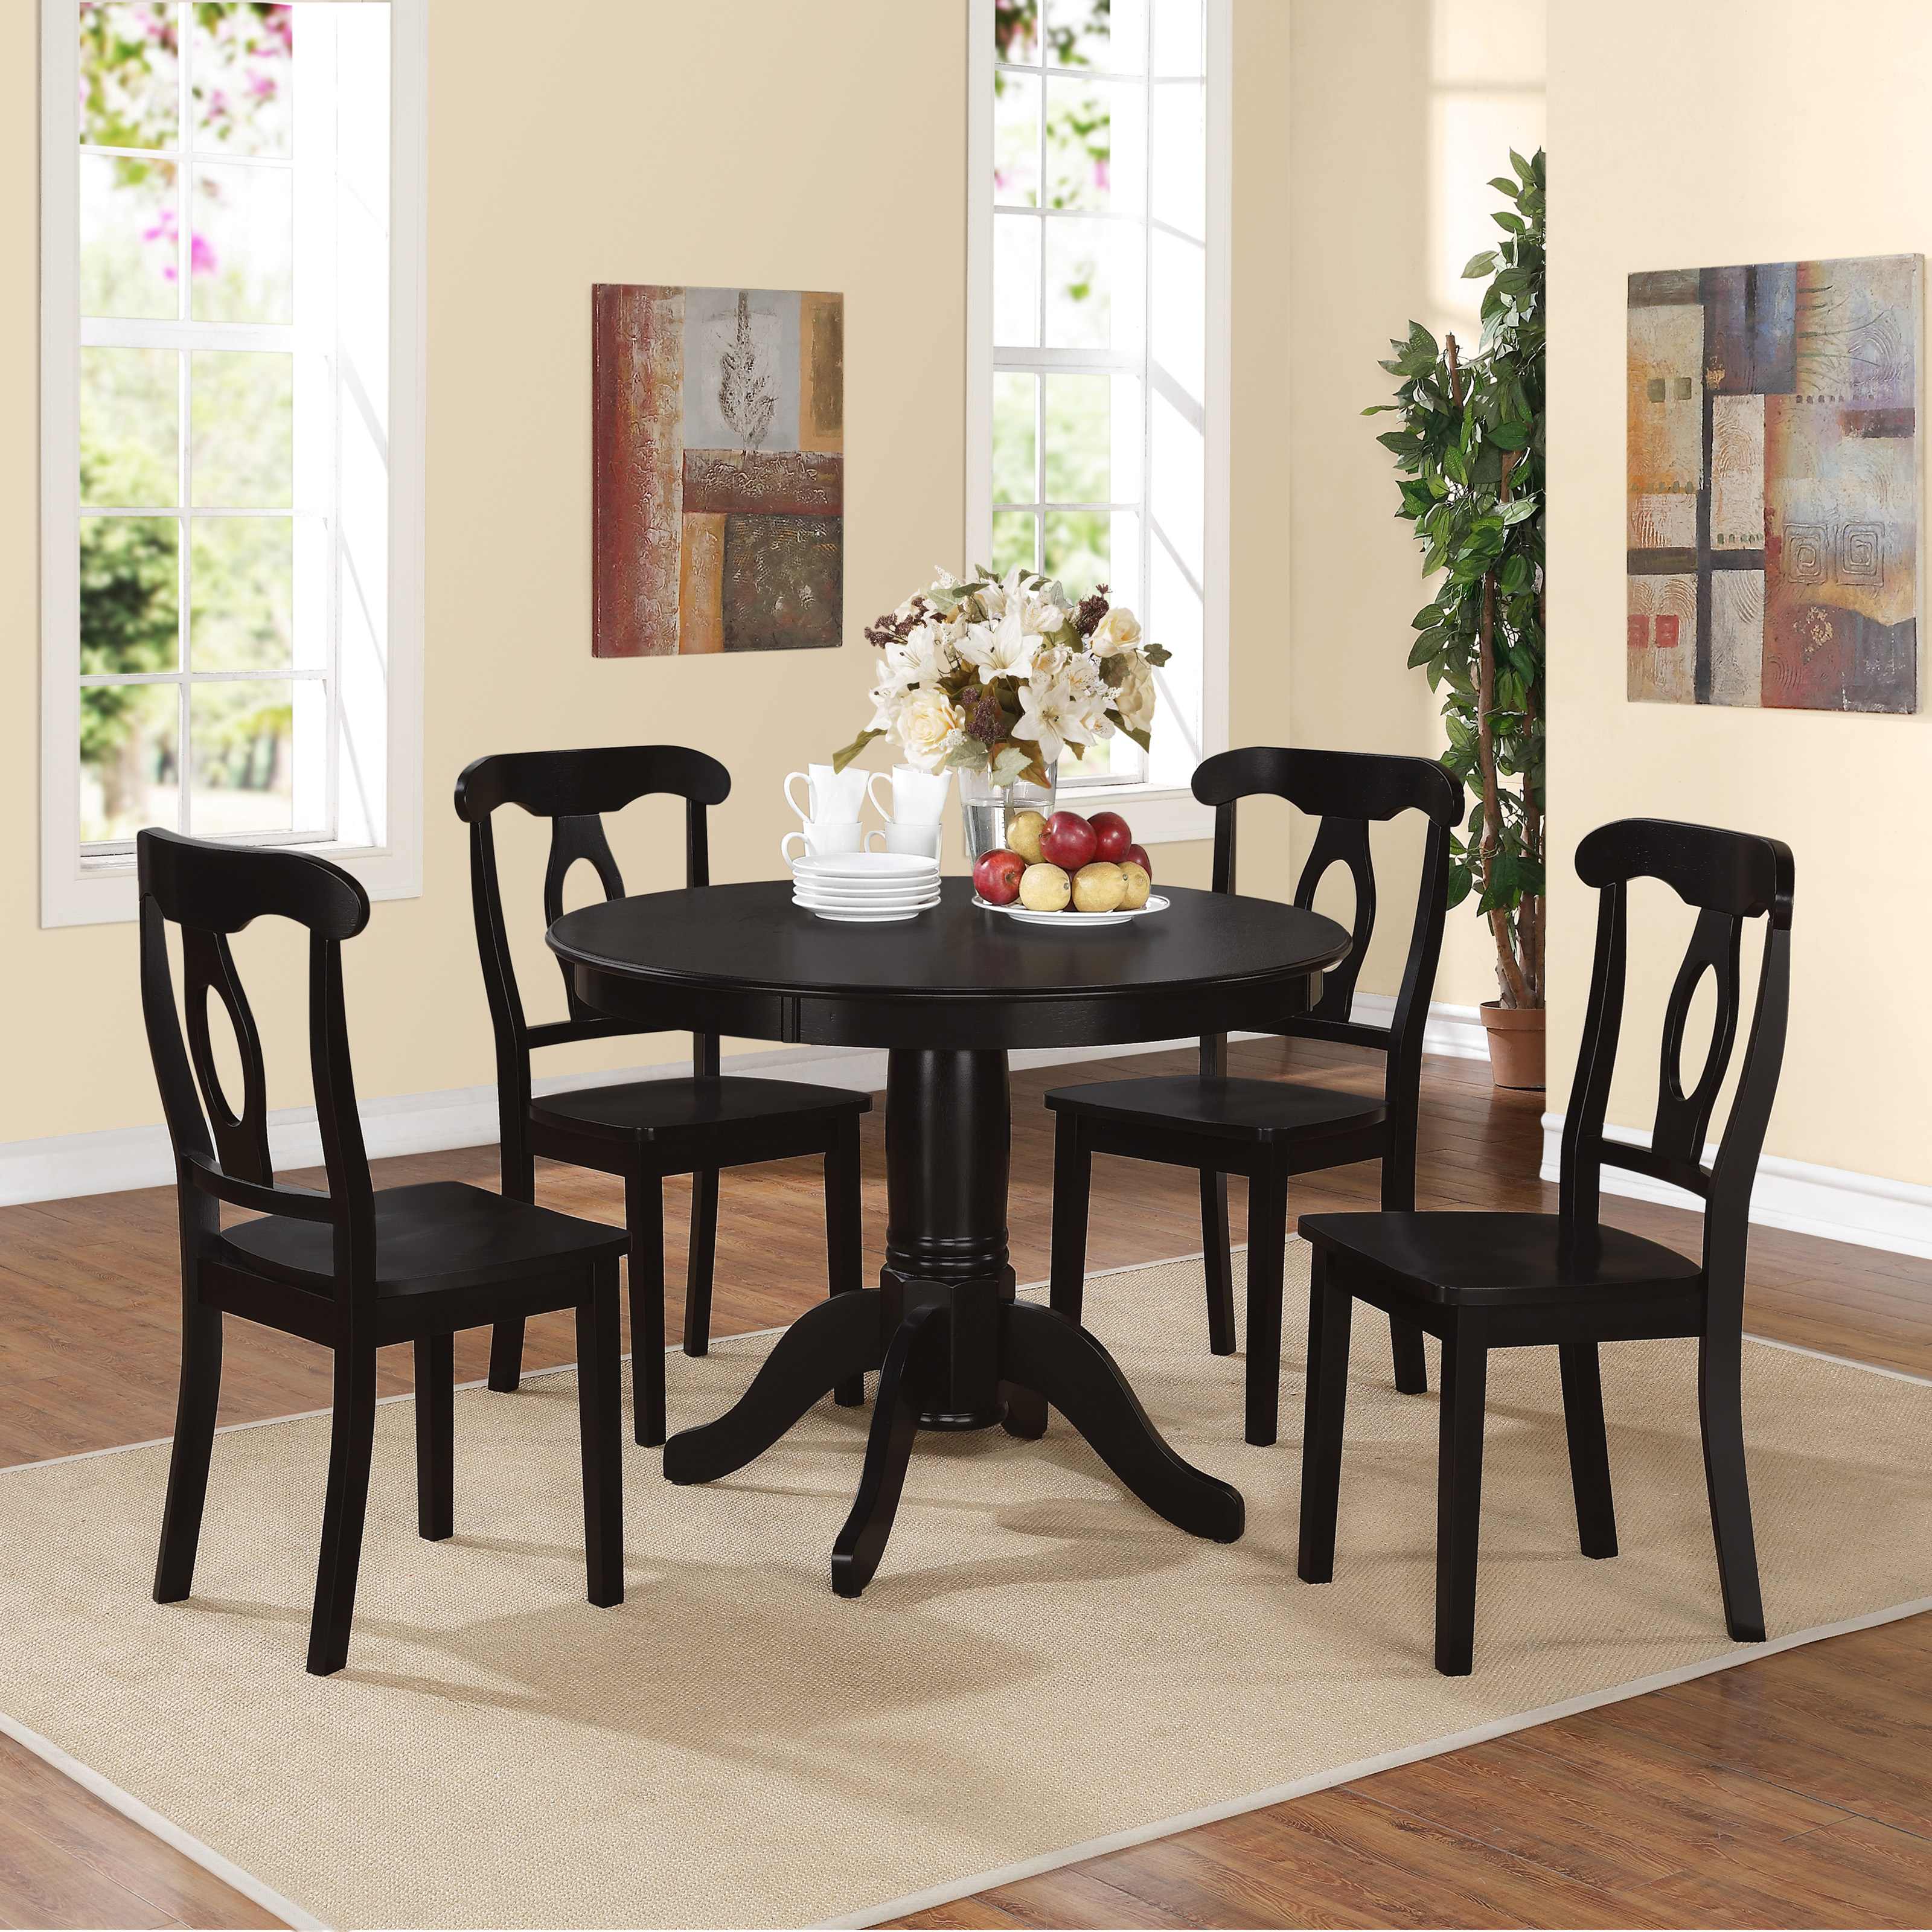 36 42 in Kitchen Dining Table Sets Hayneedle